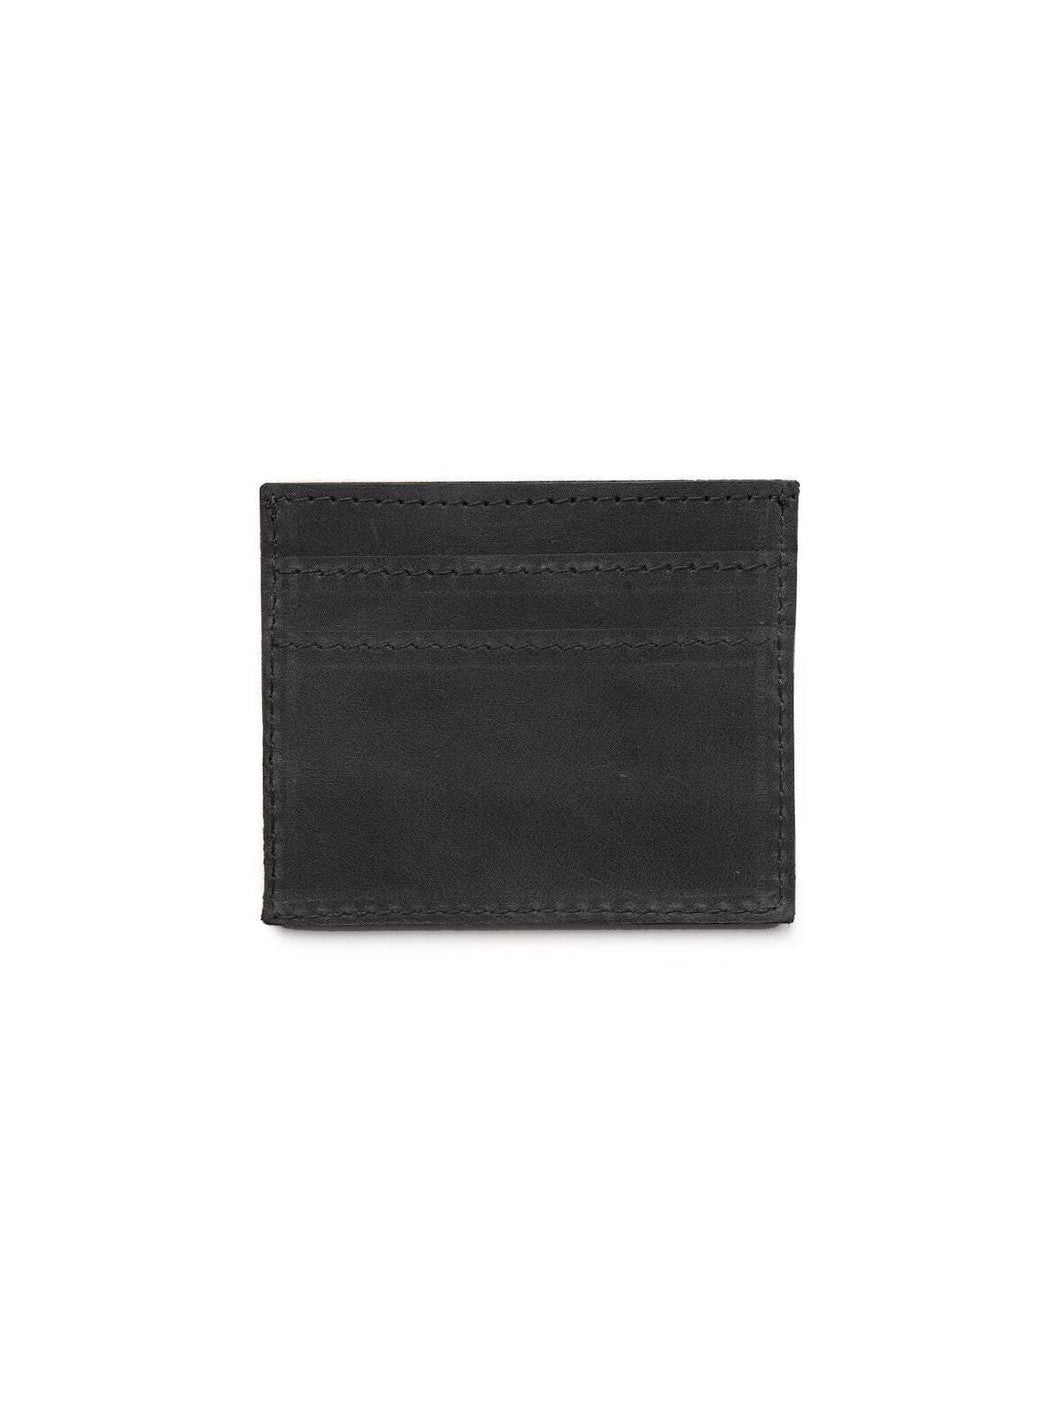 Alem card wallet